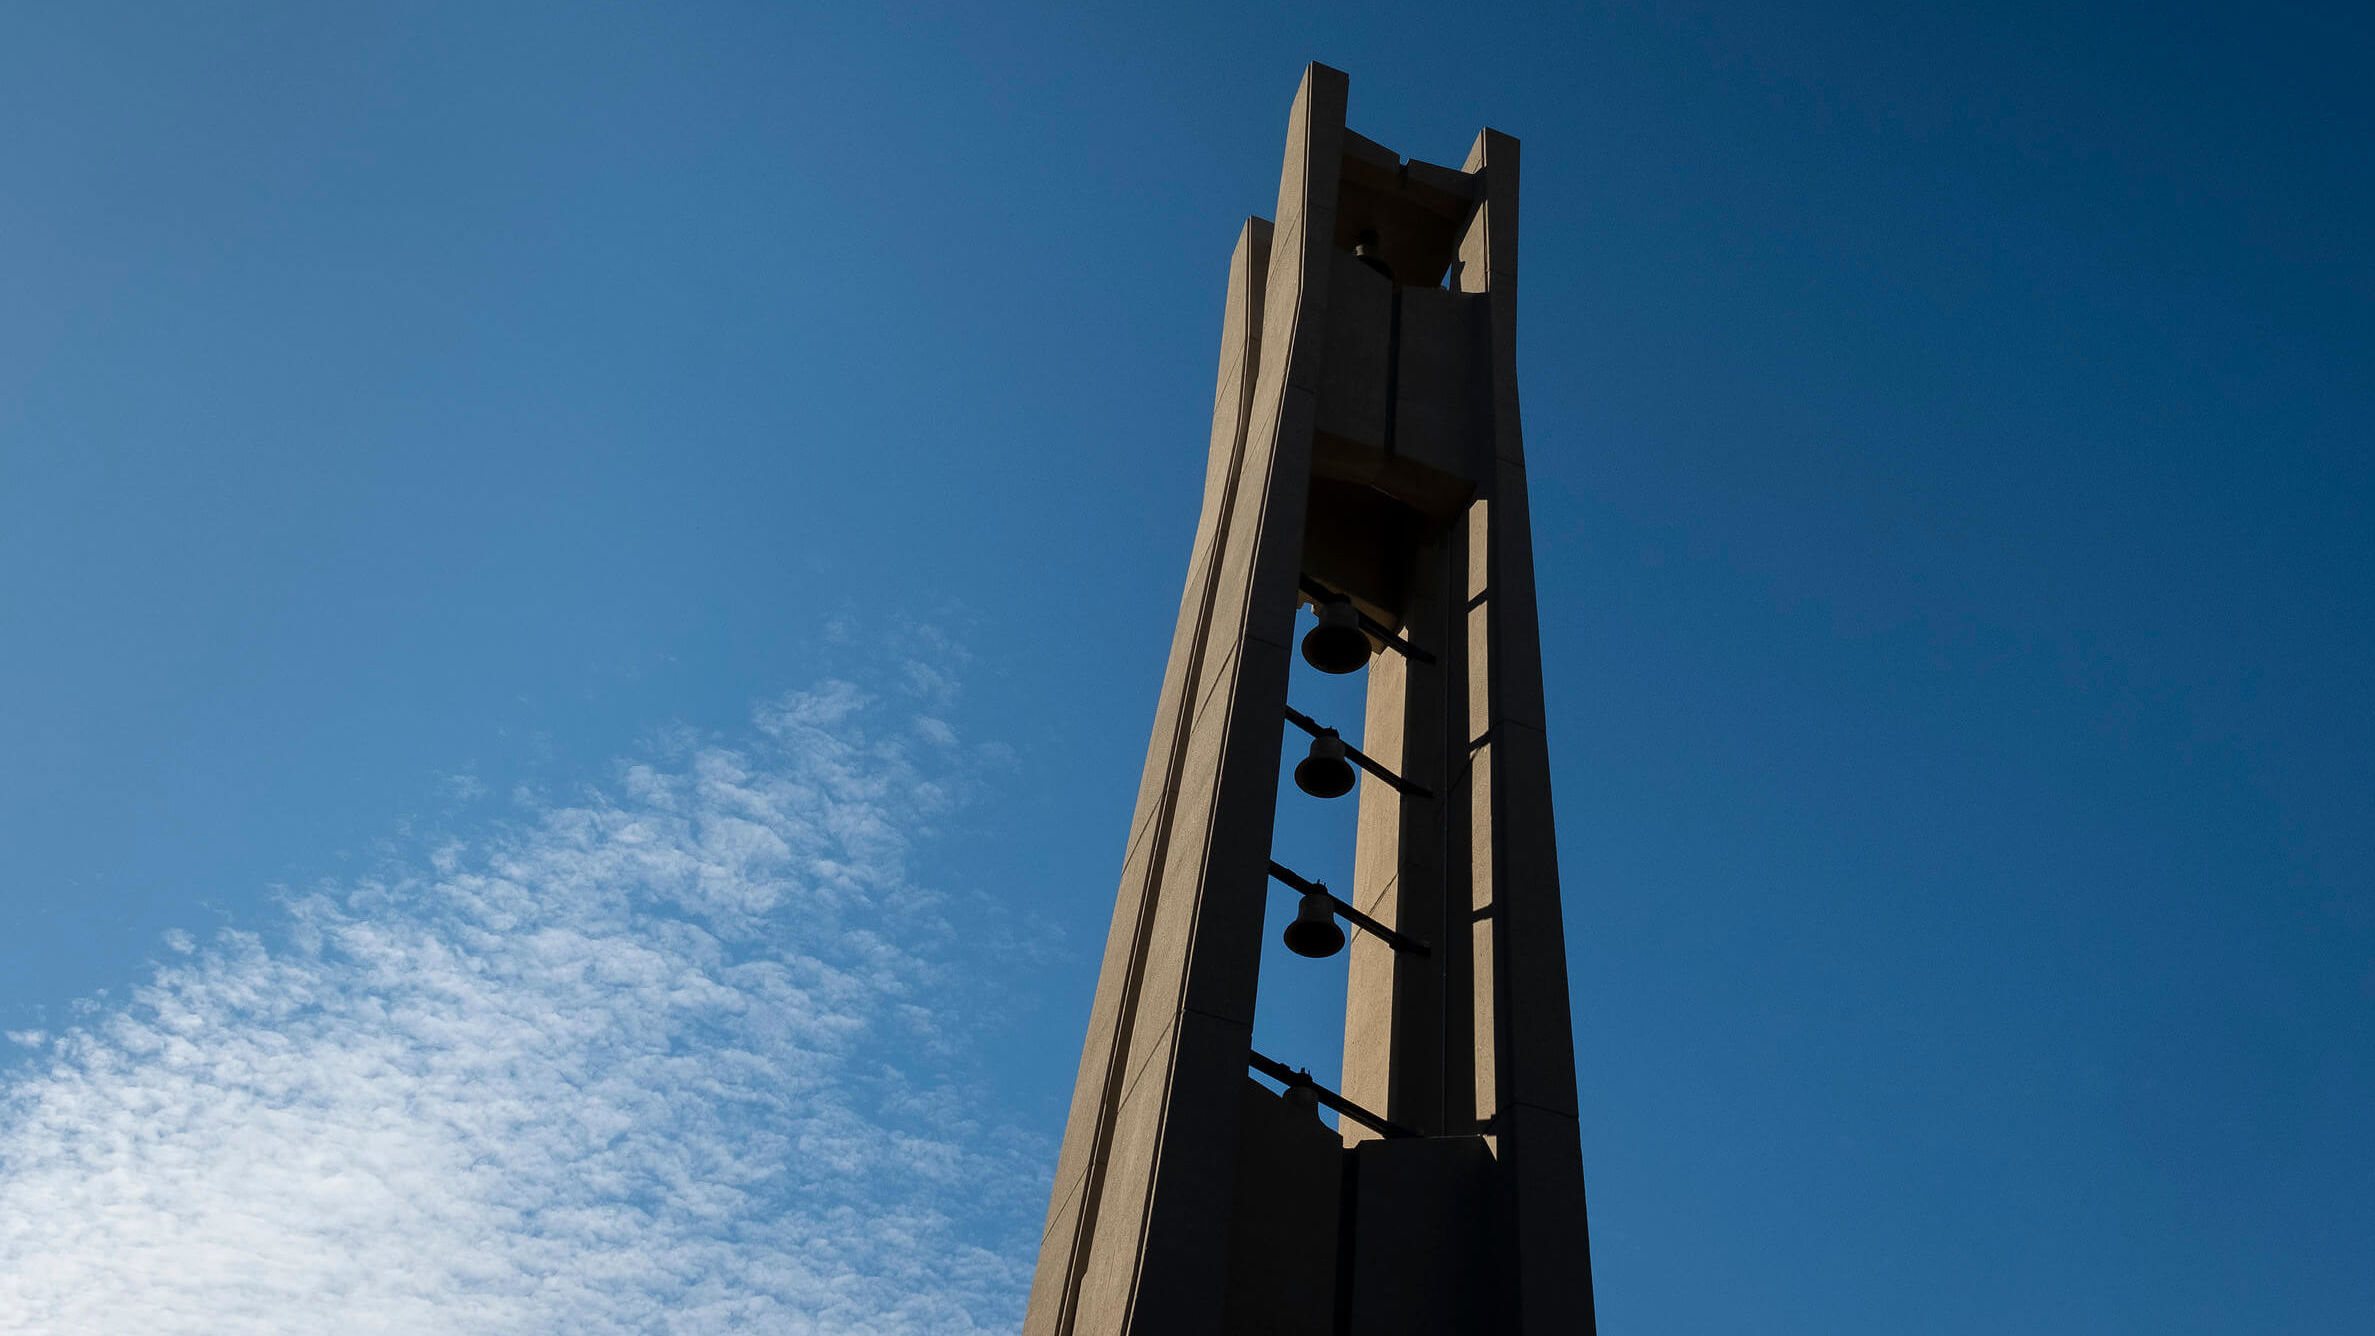 the Bell Tower rising toward a blue sky